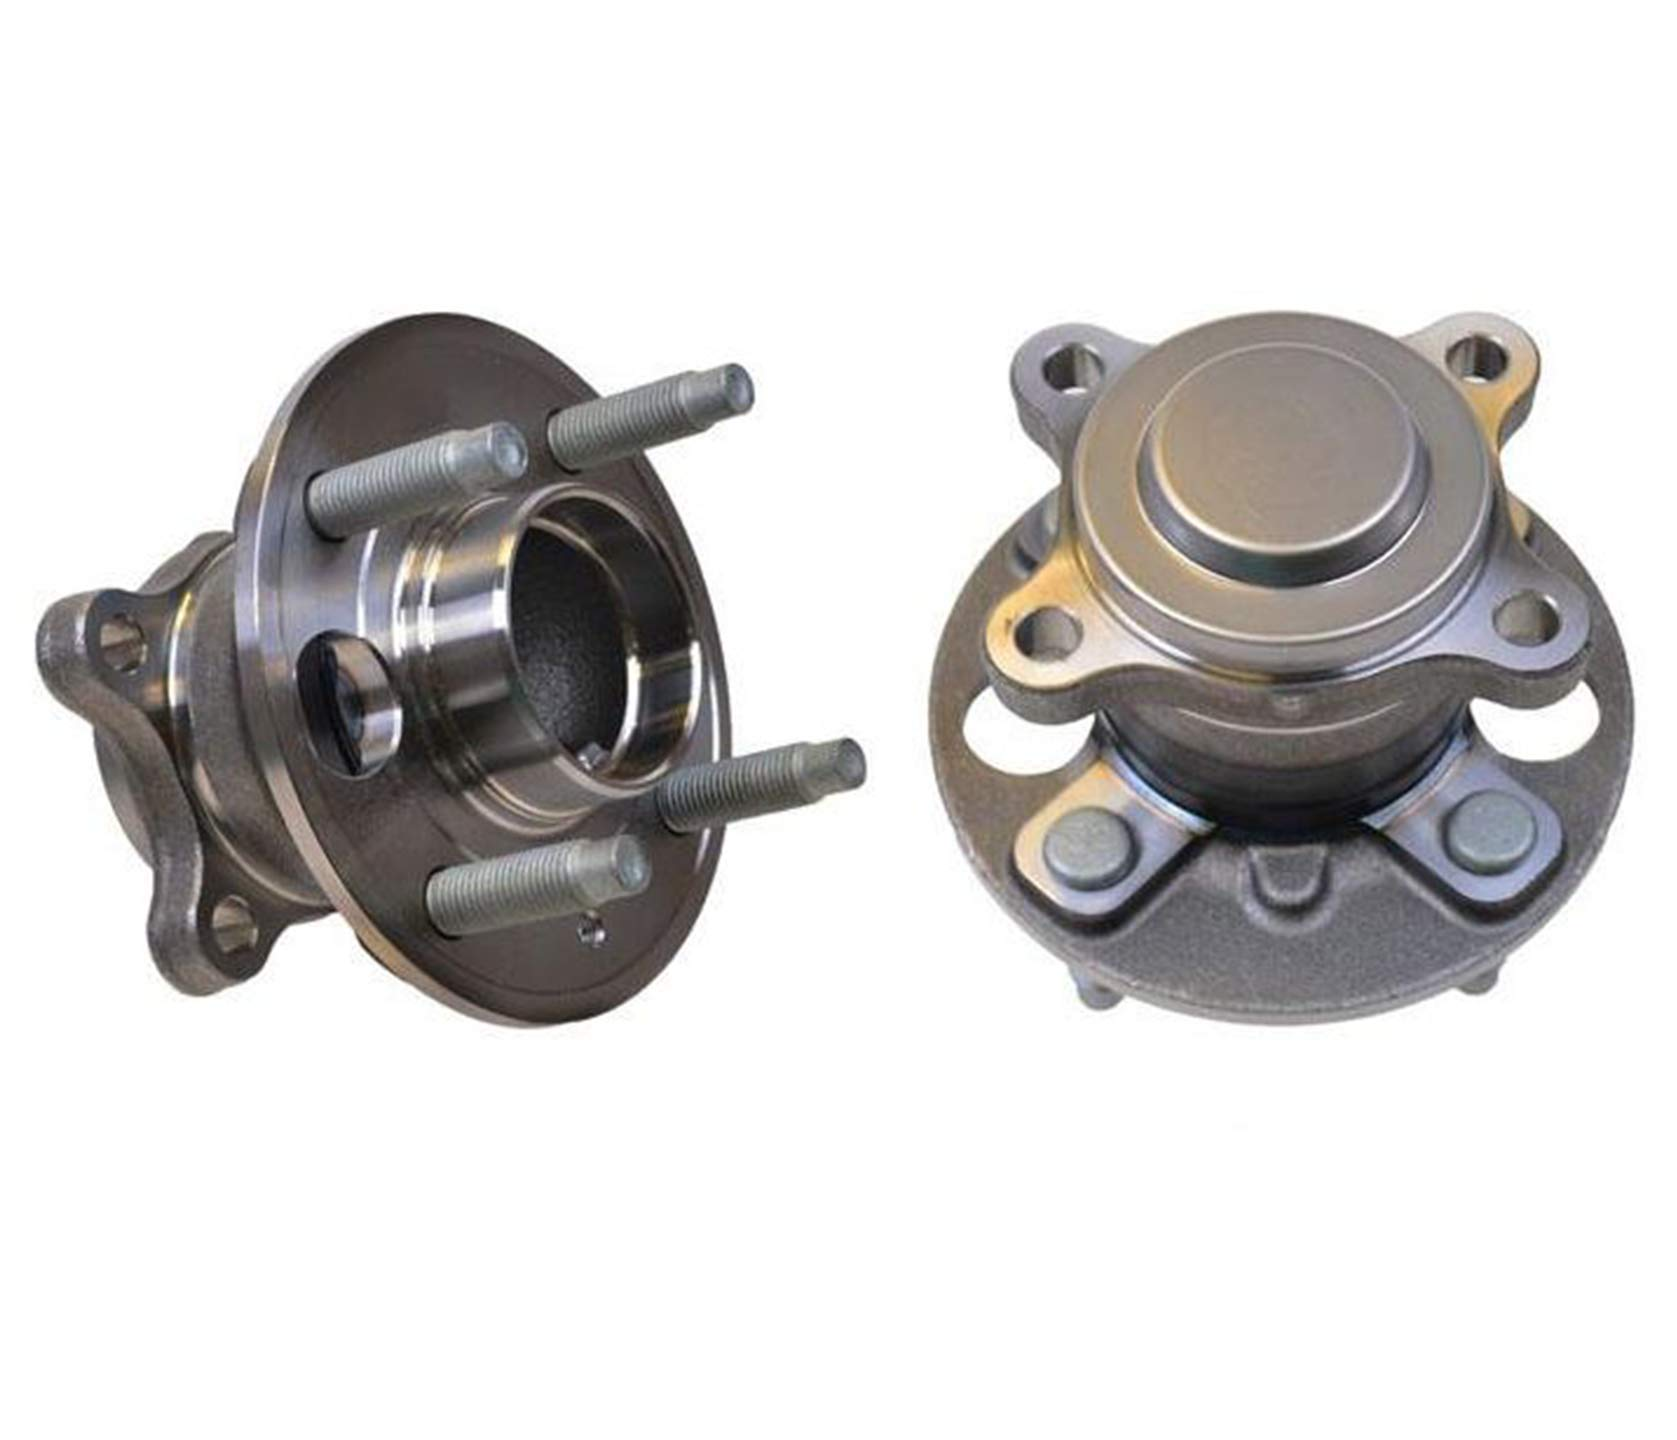 100% New REAR Left & Right Wheel Hub Bearings for Chevrolet Spark 13584682 16-17 by Mac Auto Parts